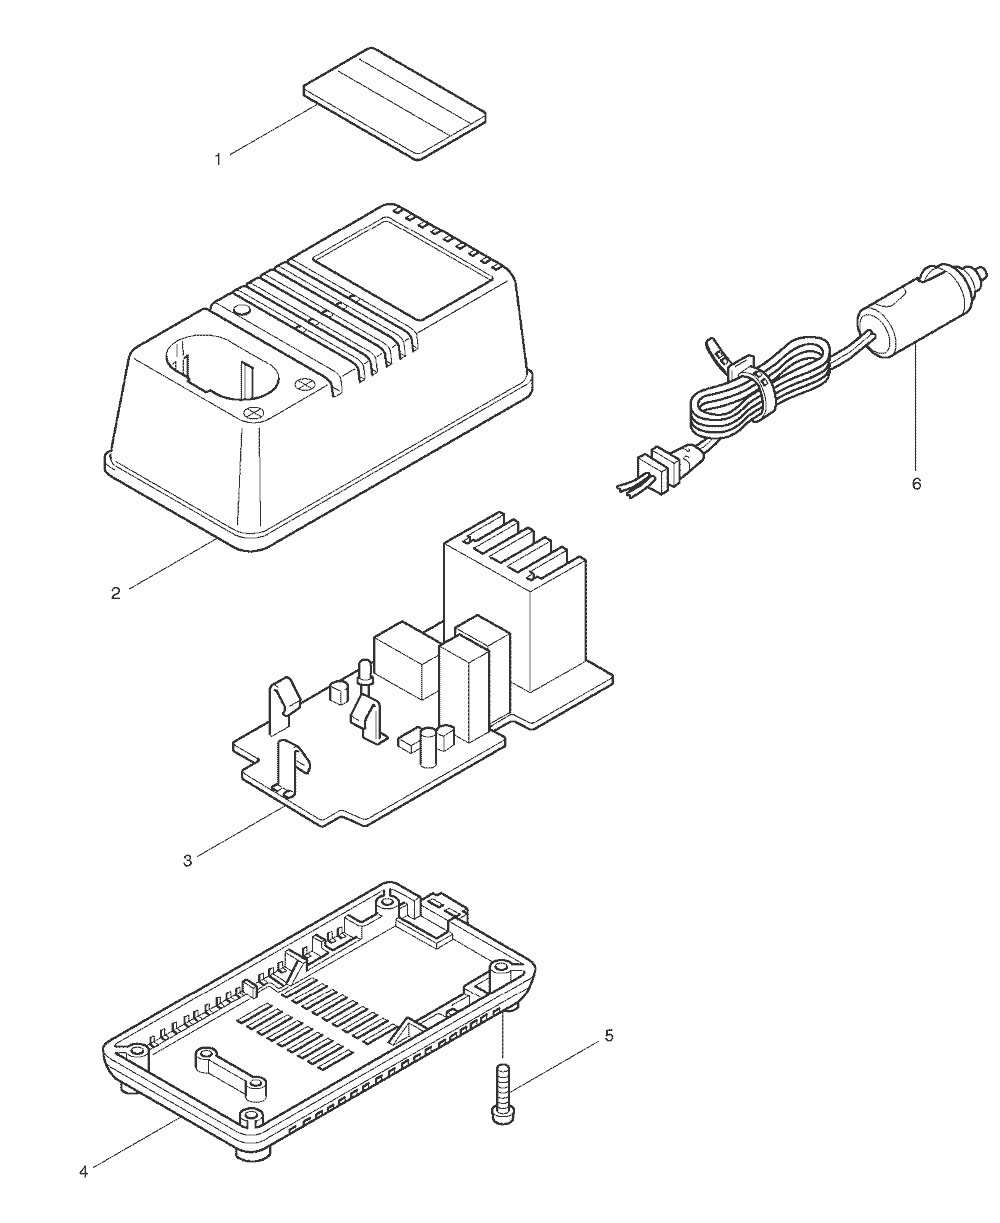 makita battery charger wiring diagram buy makita dc7112 replacement tool parts | makita dc7112 ...